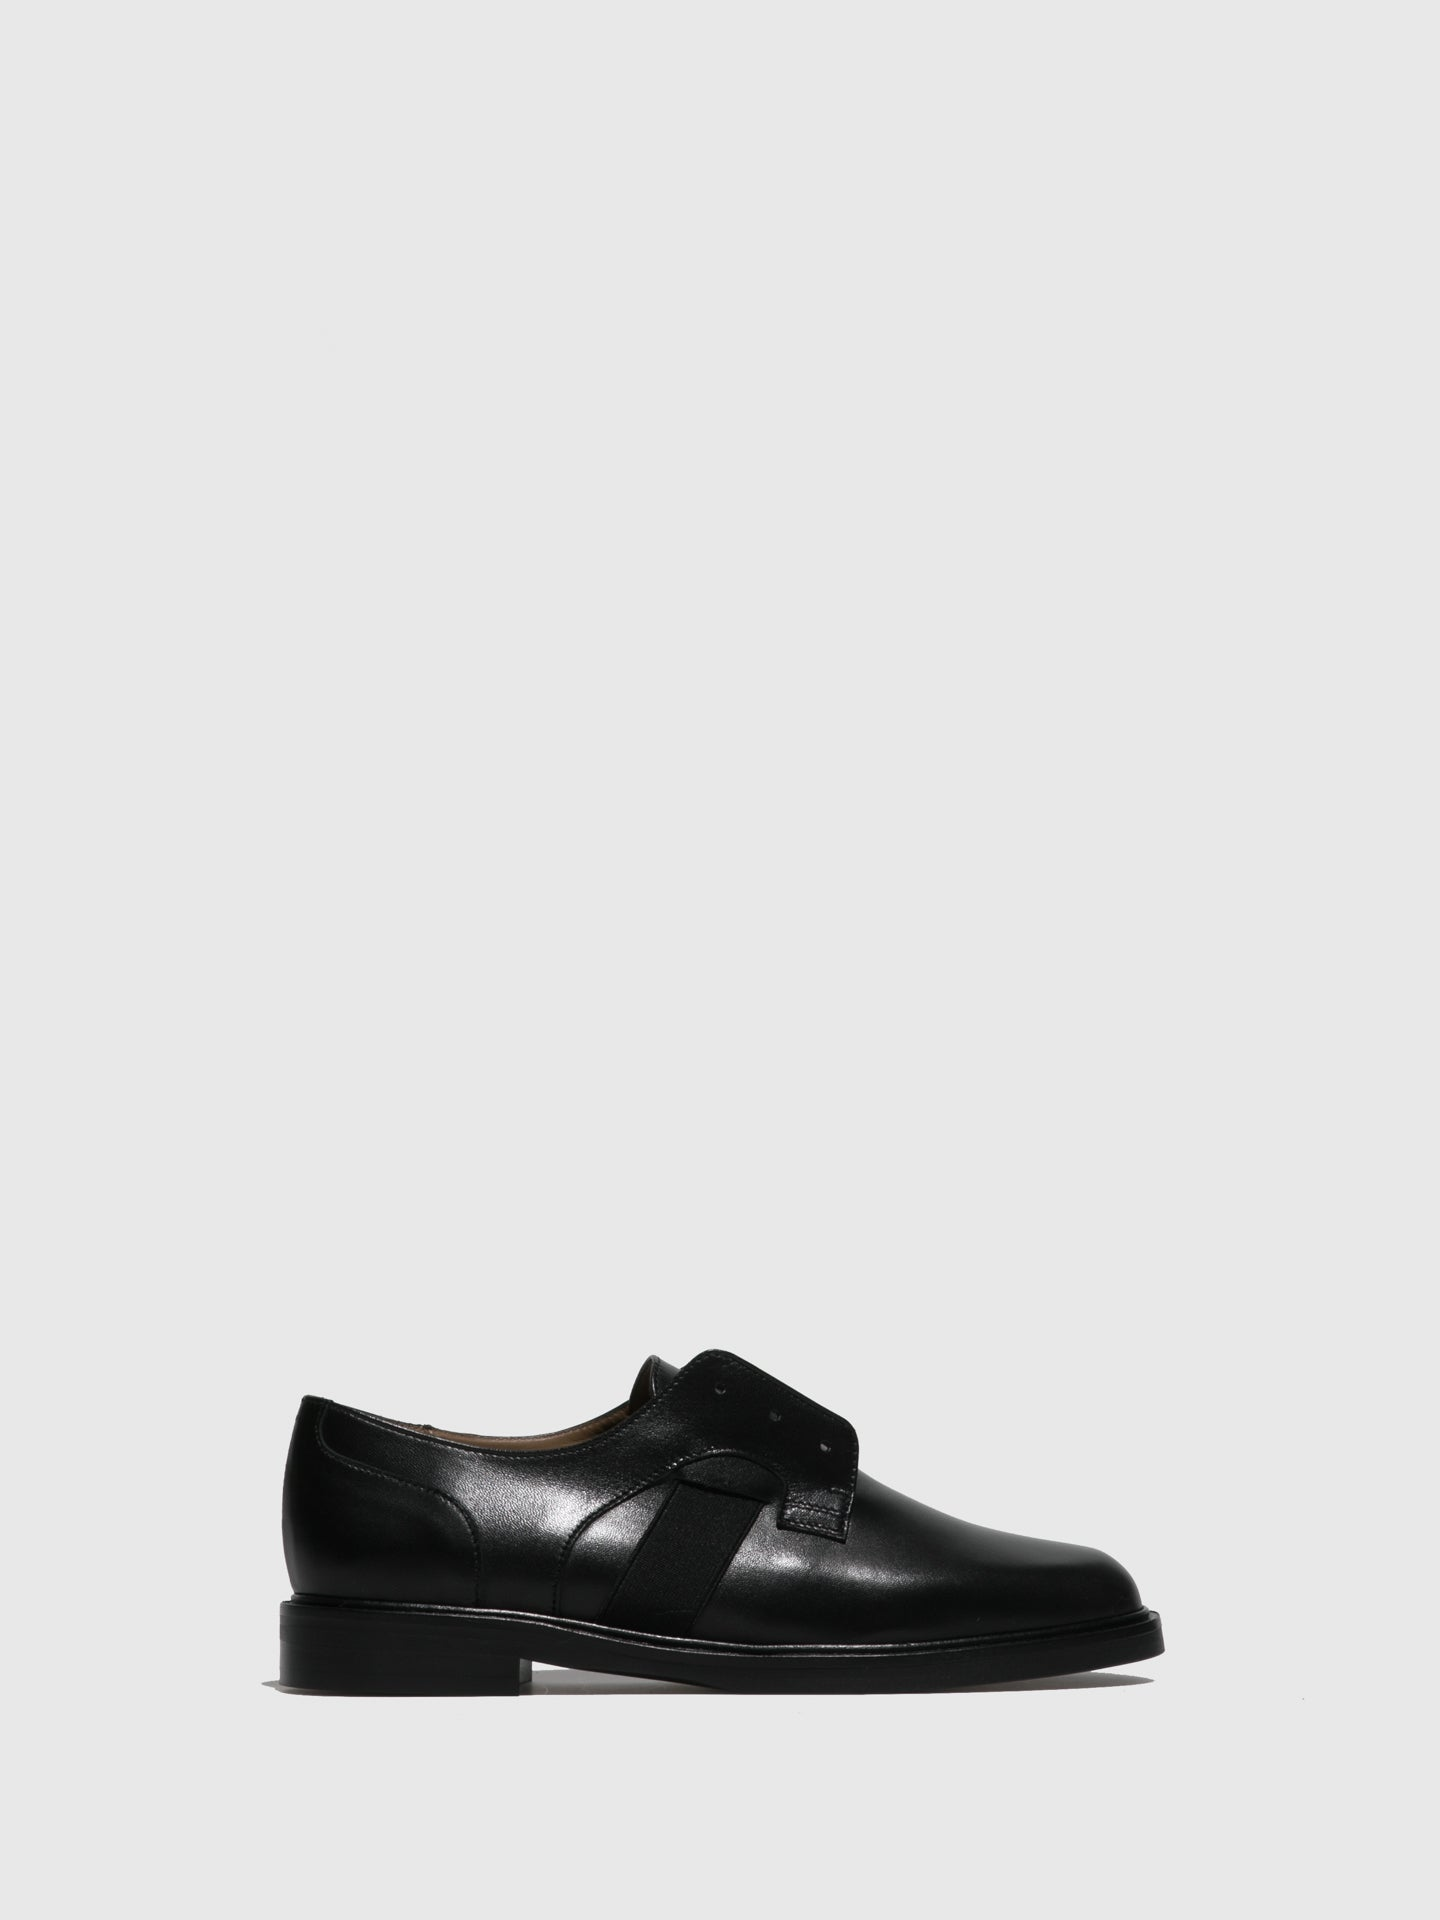 JJ Heitor Black Slip-on Shoes